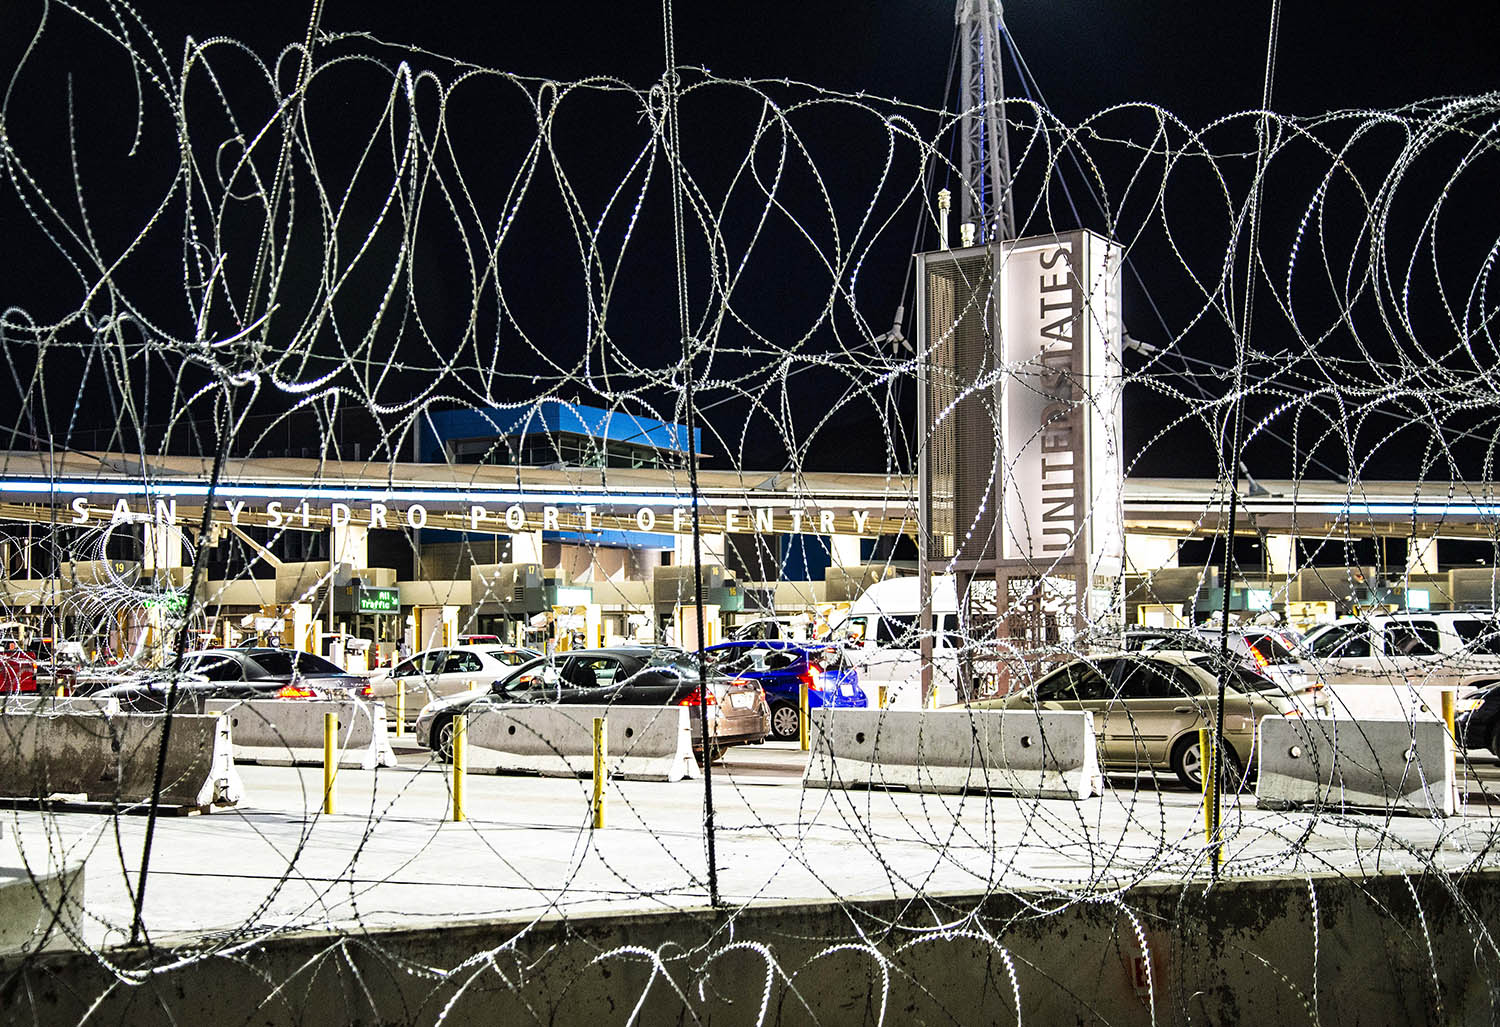 San-Ysidro-Border-USA-Mexico-night-barbed-wire.jpg